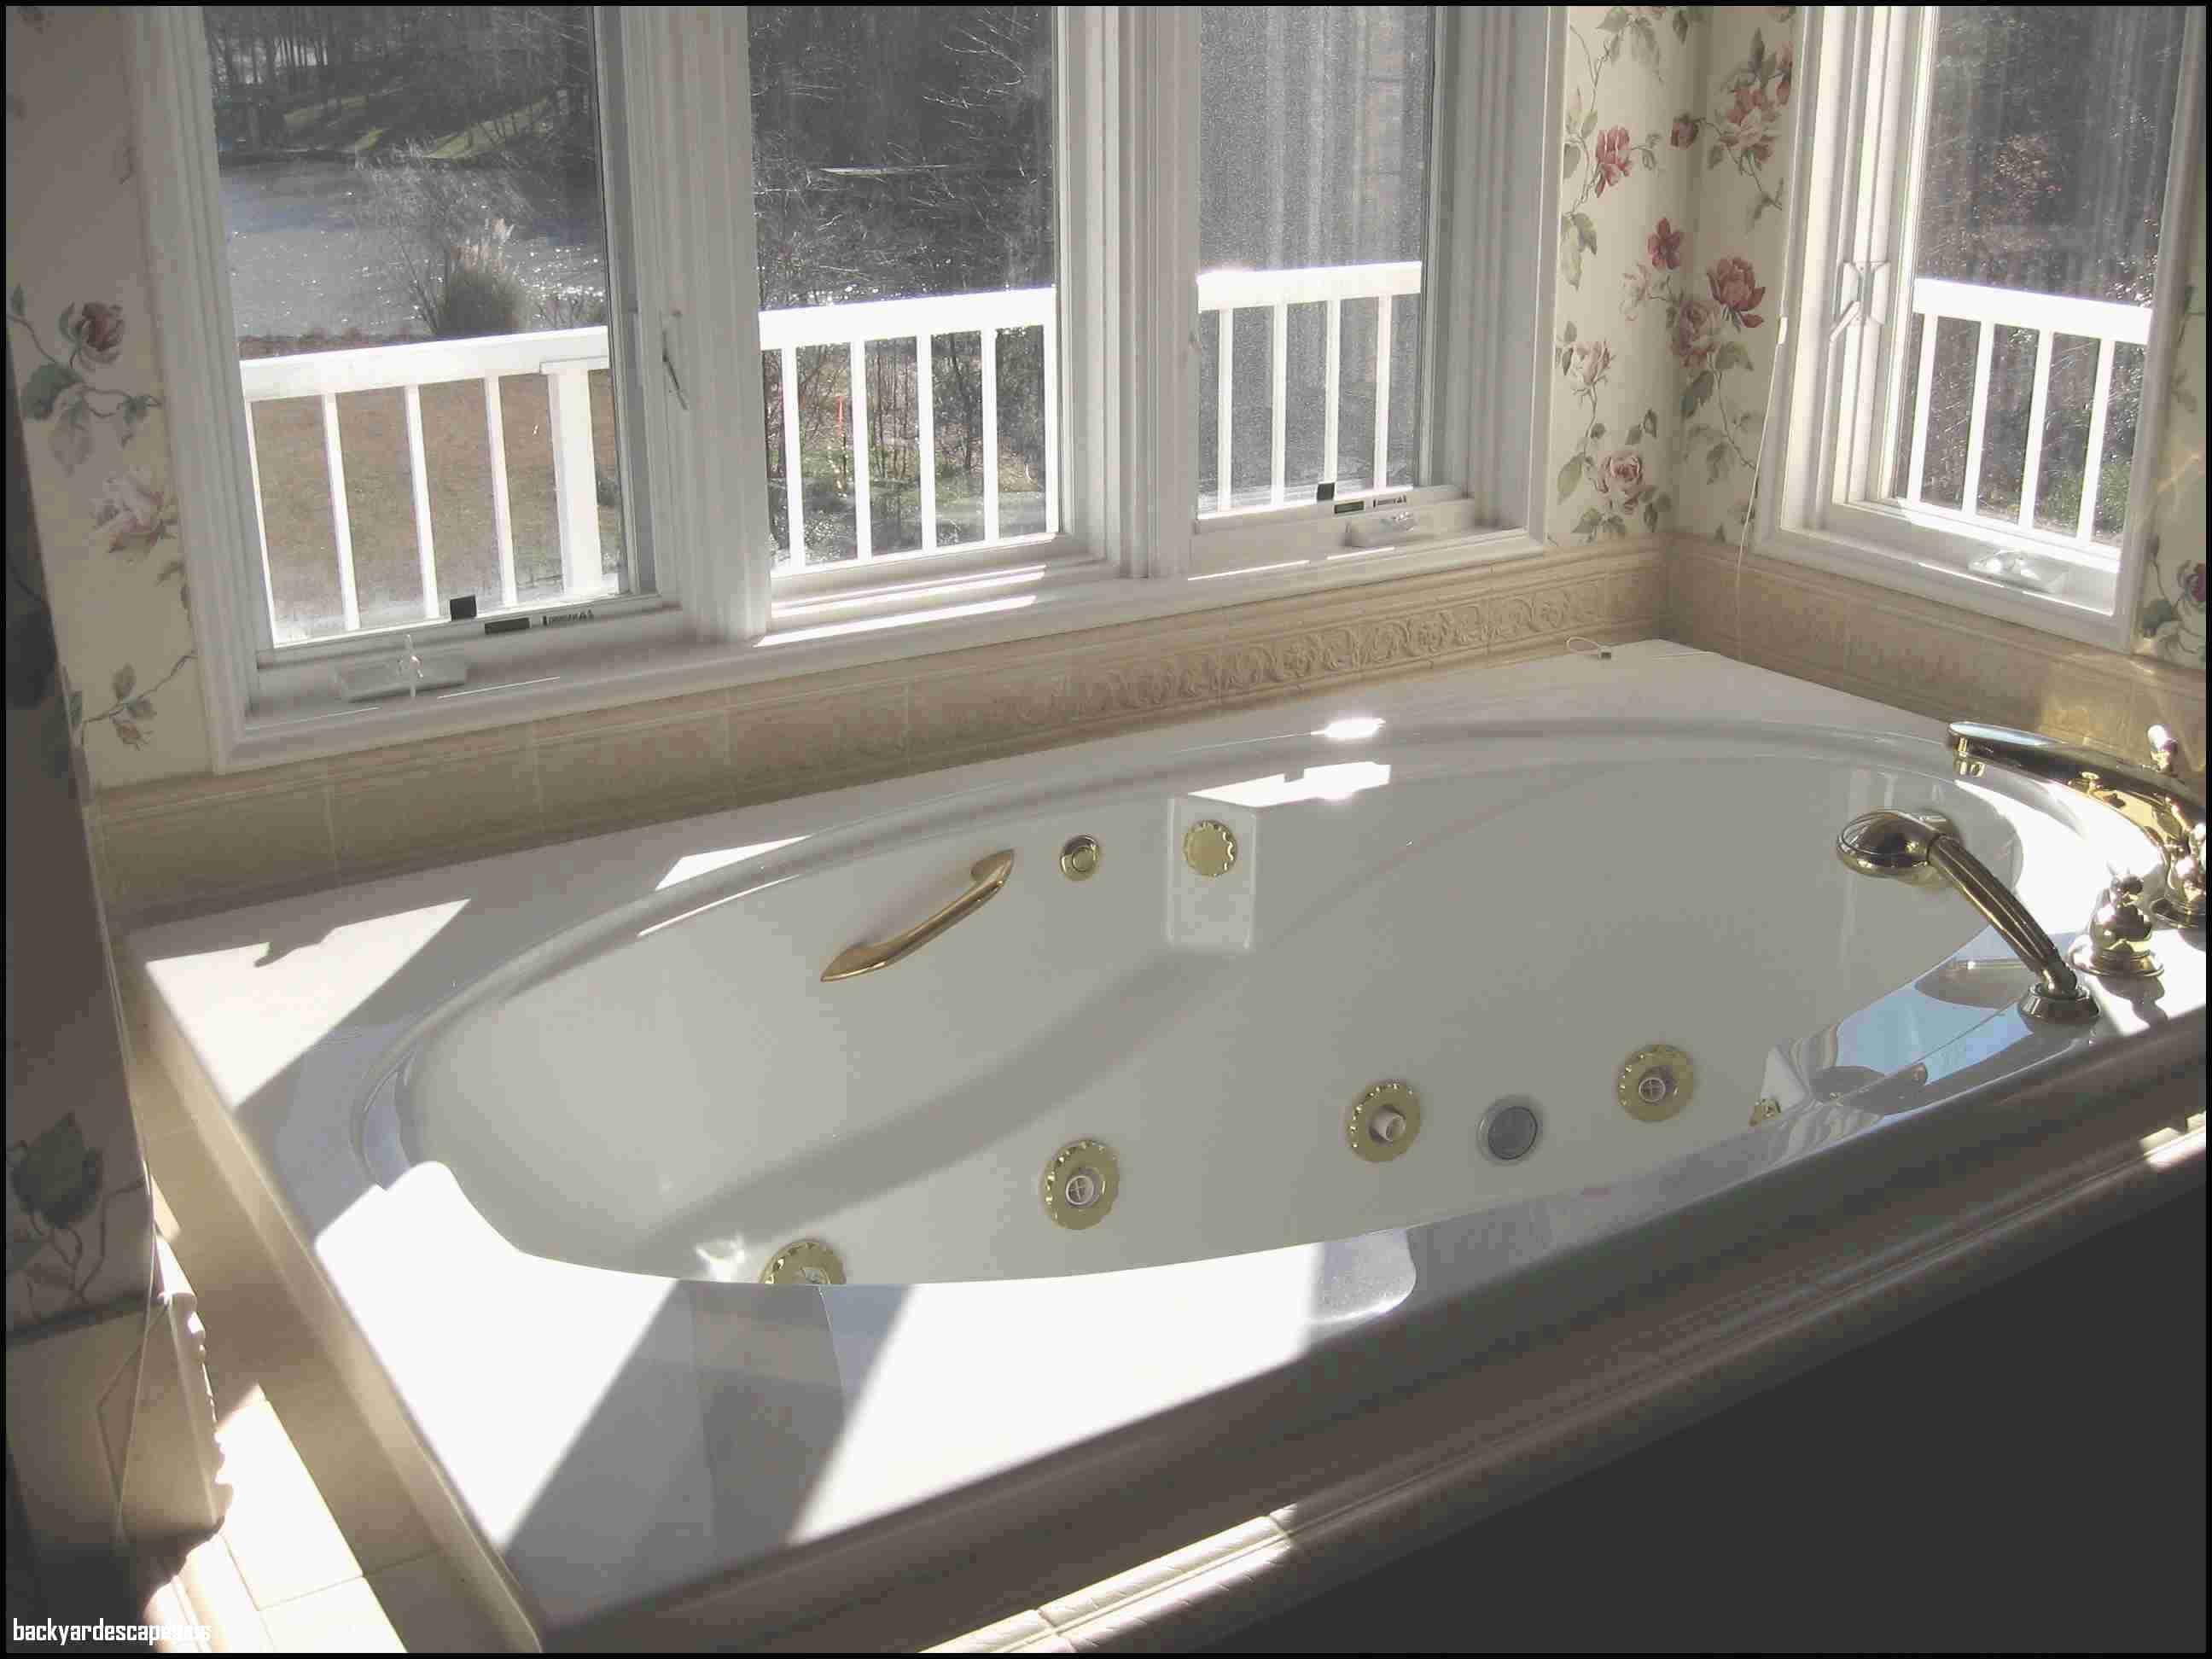 Garden Bathtub For Mobile Home - Bathtub Ideas